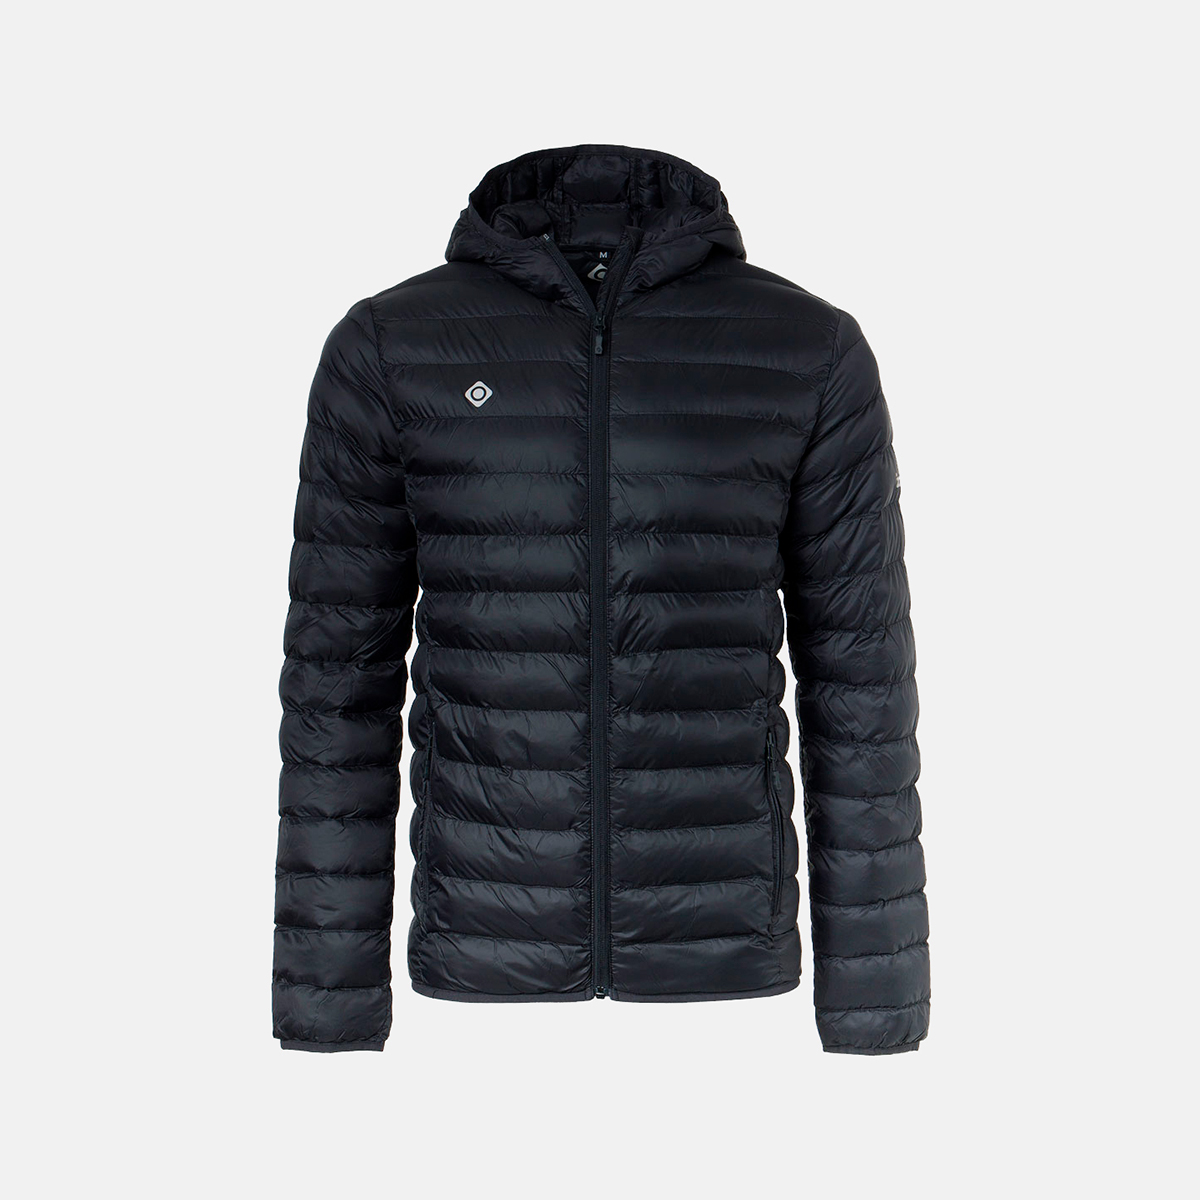 MAN'S FLORENZ DOWN JACKET WITH HOOD BLACK